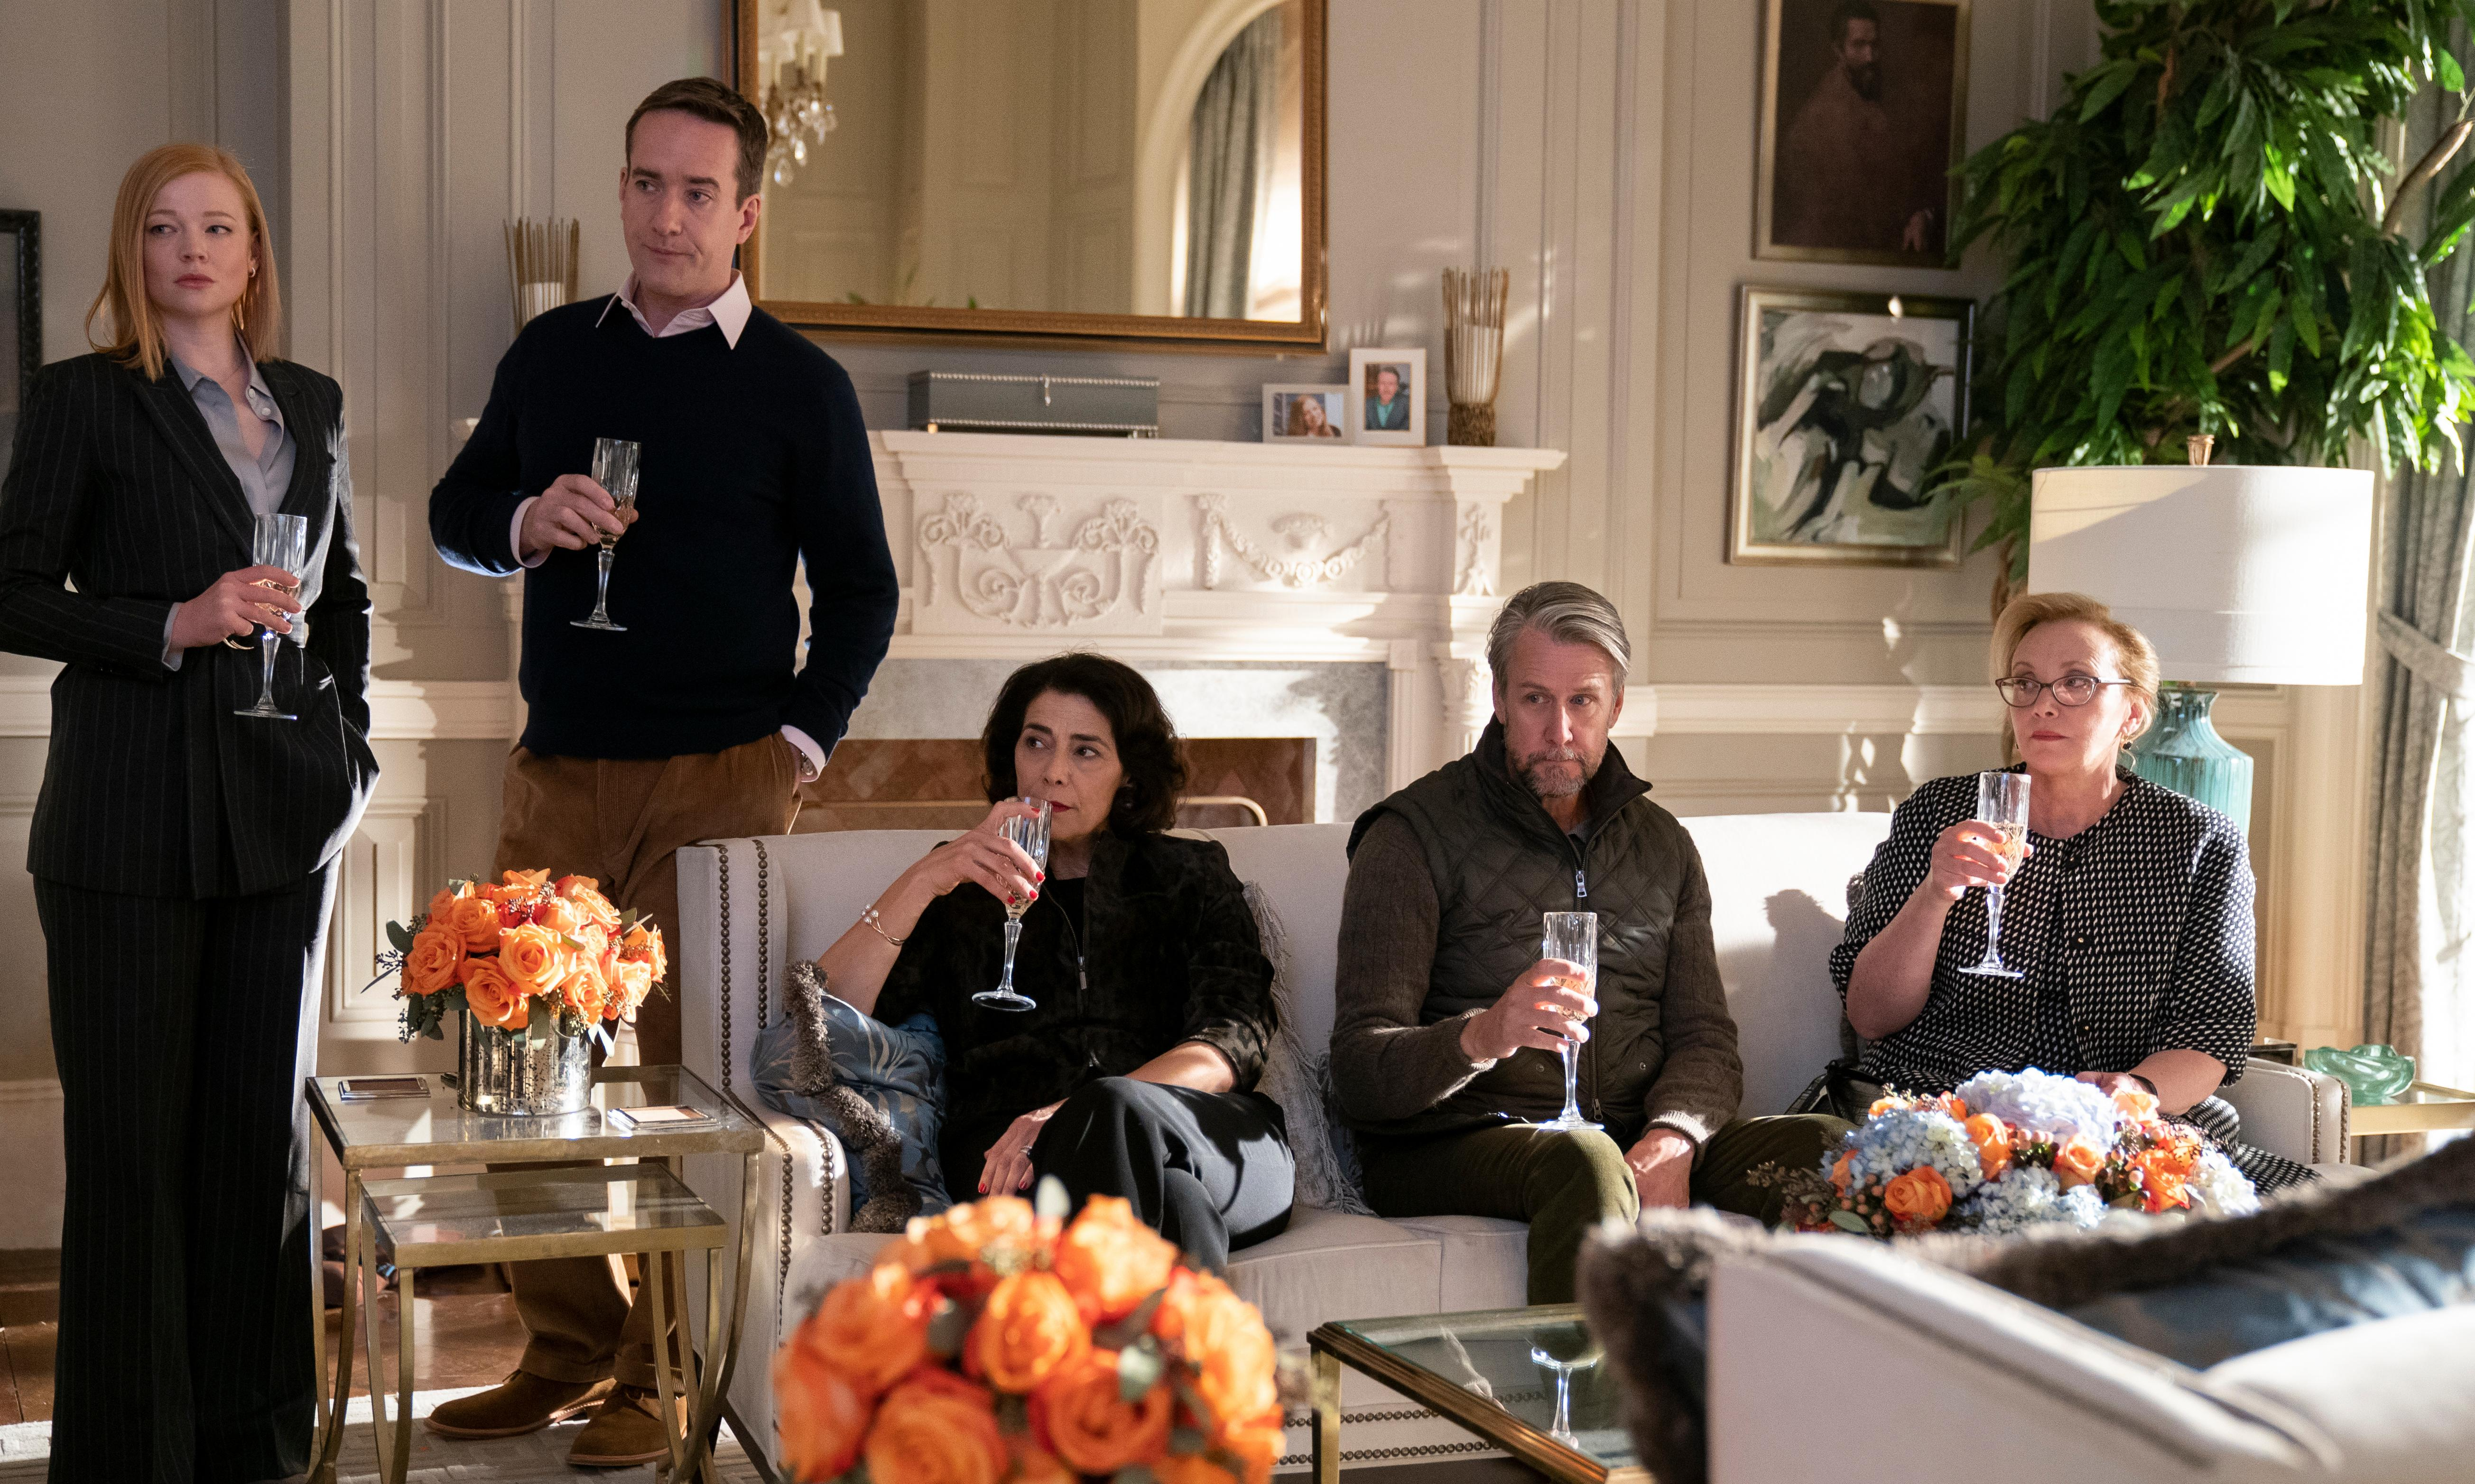 Behind the scenes of Succession's stealth wealth fashion